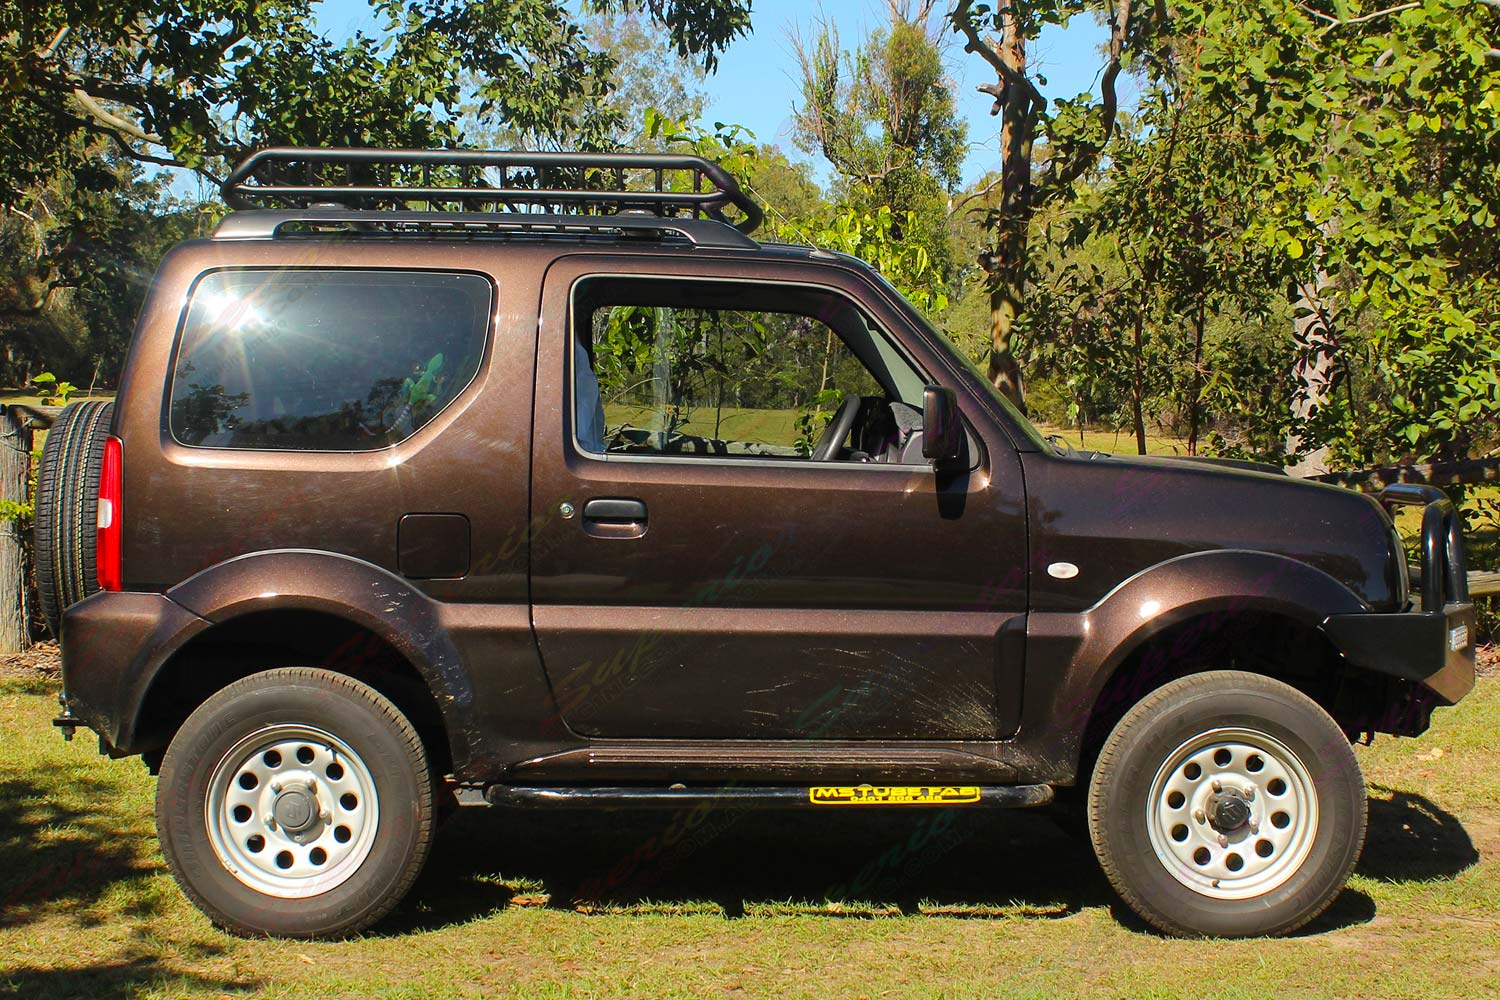 Right side view of a brown Suzuki Jimny Sierra Wagon fitted with a heavy duty 60mm Tough Dog lift kit